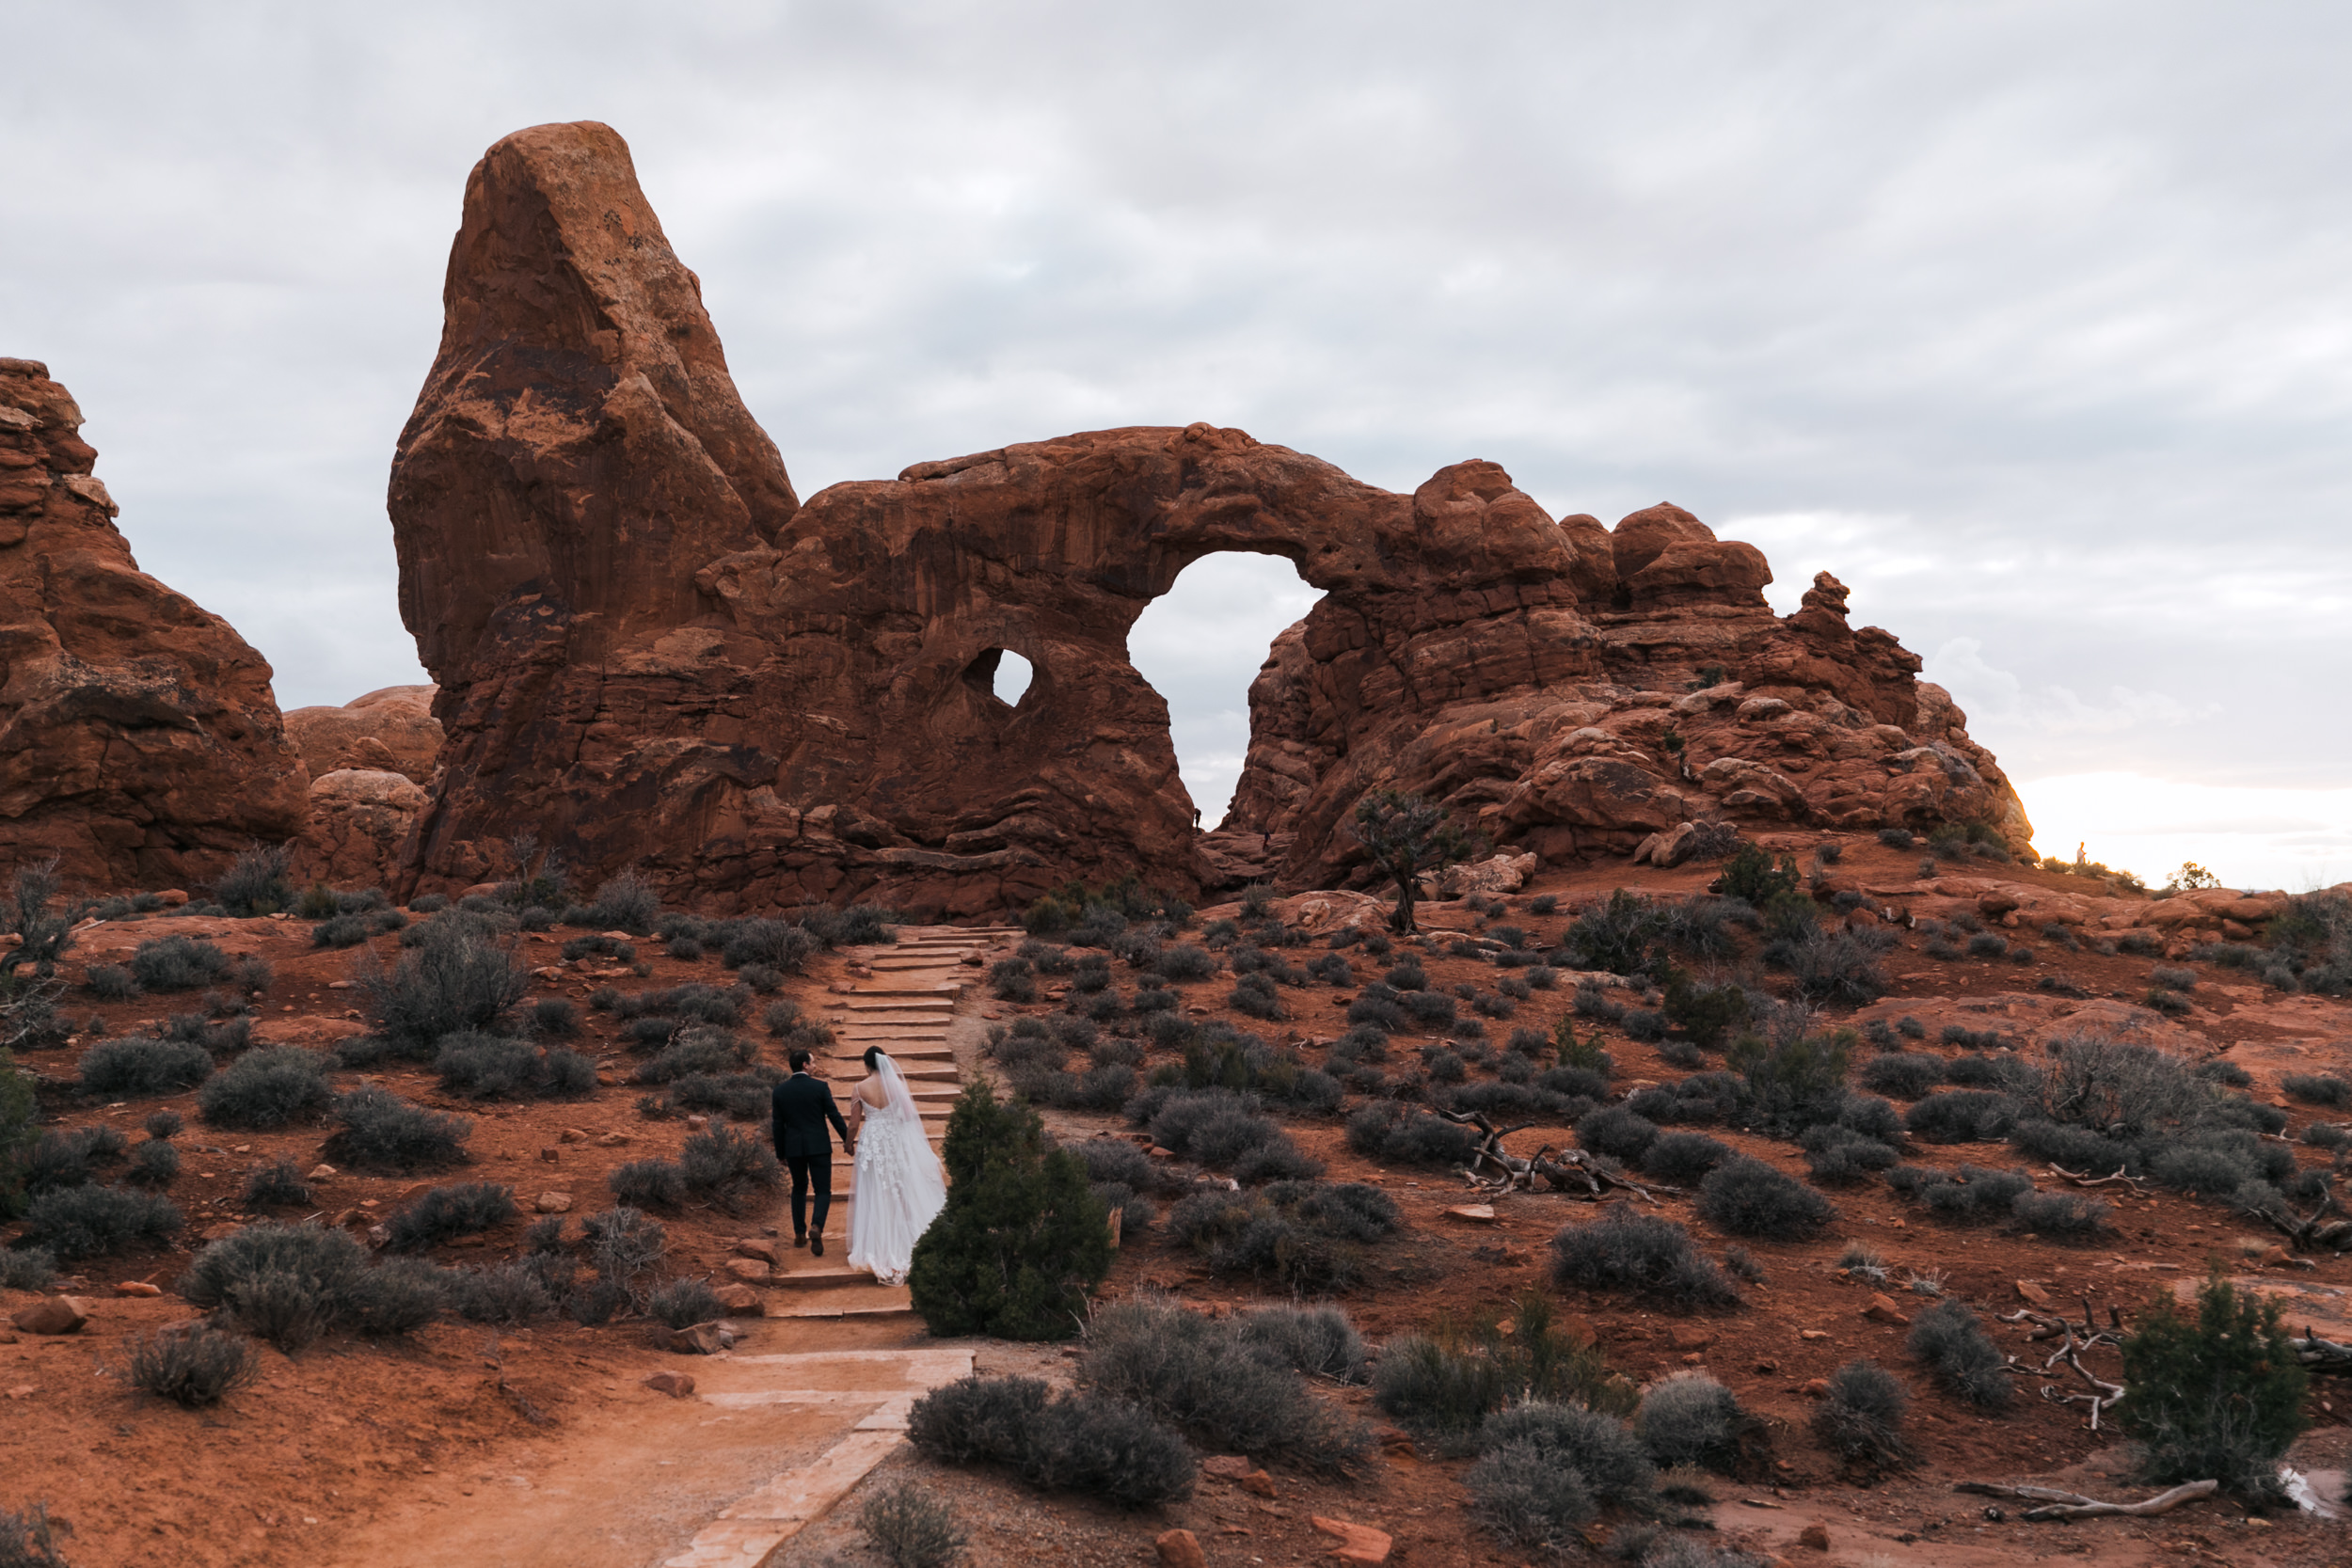 Walking up the stairs to Turret Arch in Arches National Park. Double arch is just a few minute walk away.